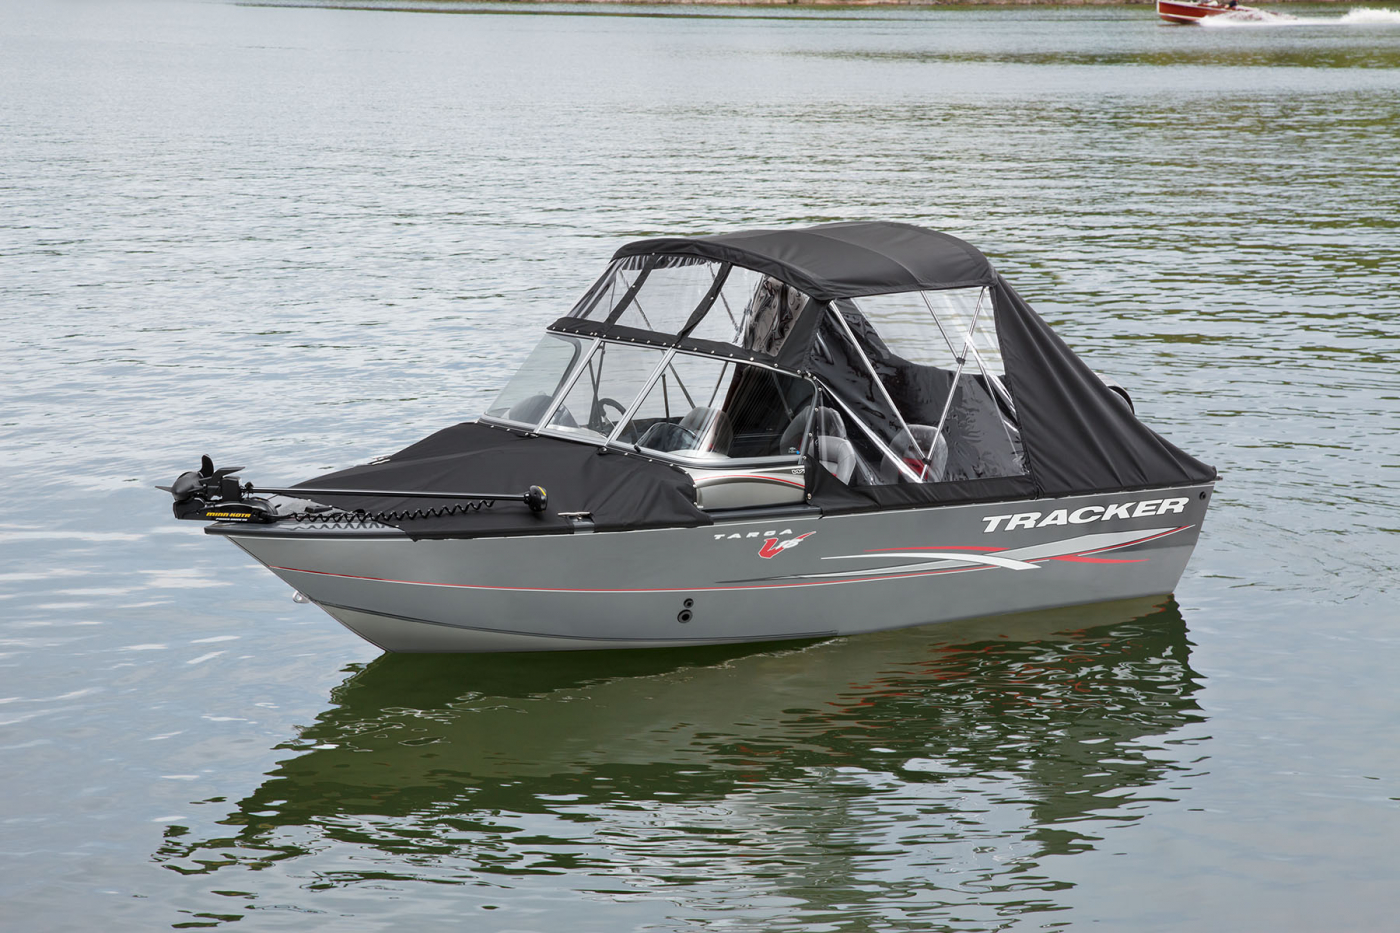 Pre Owned Trucks >> Full Enclosure for Tracker Boats | Exclusive Auto Marine